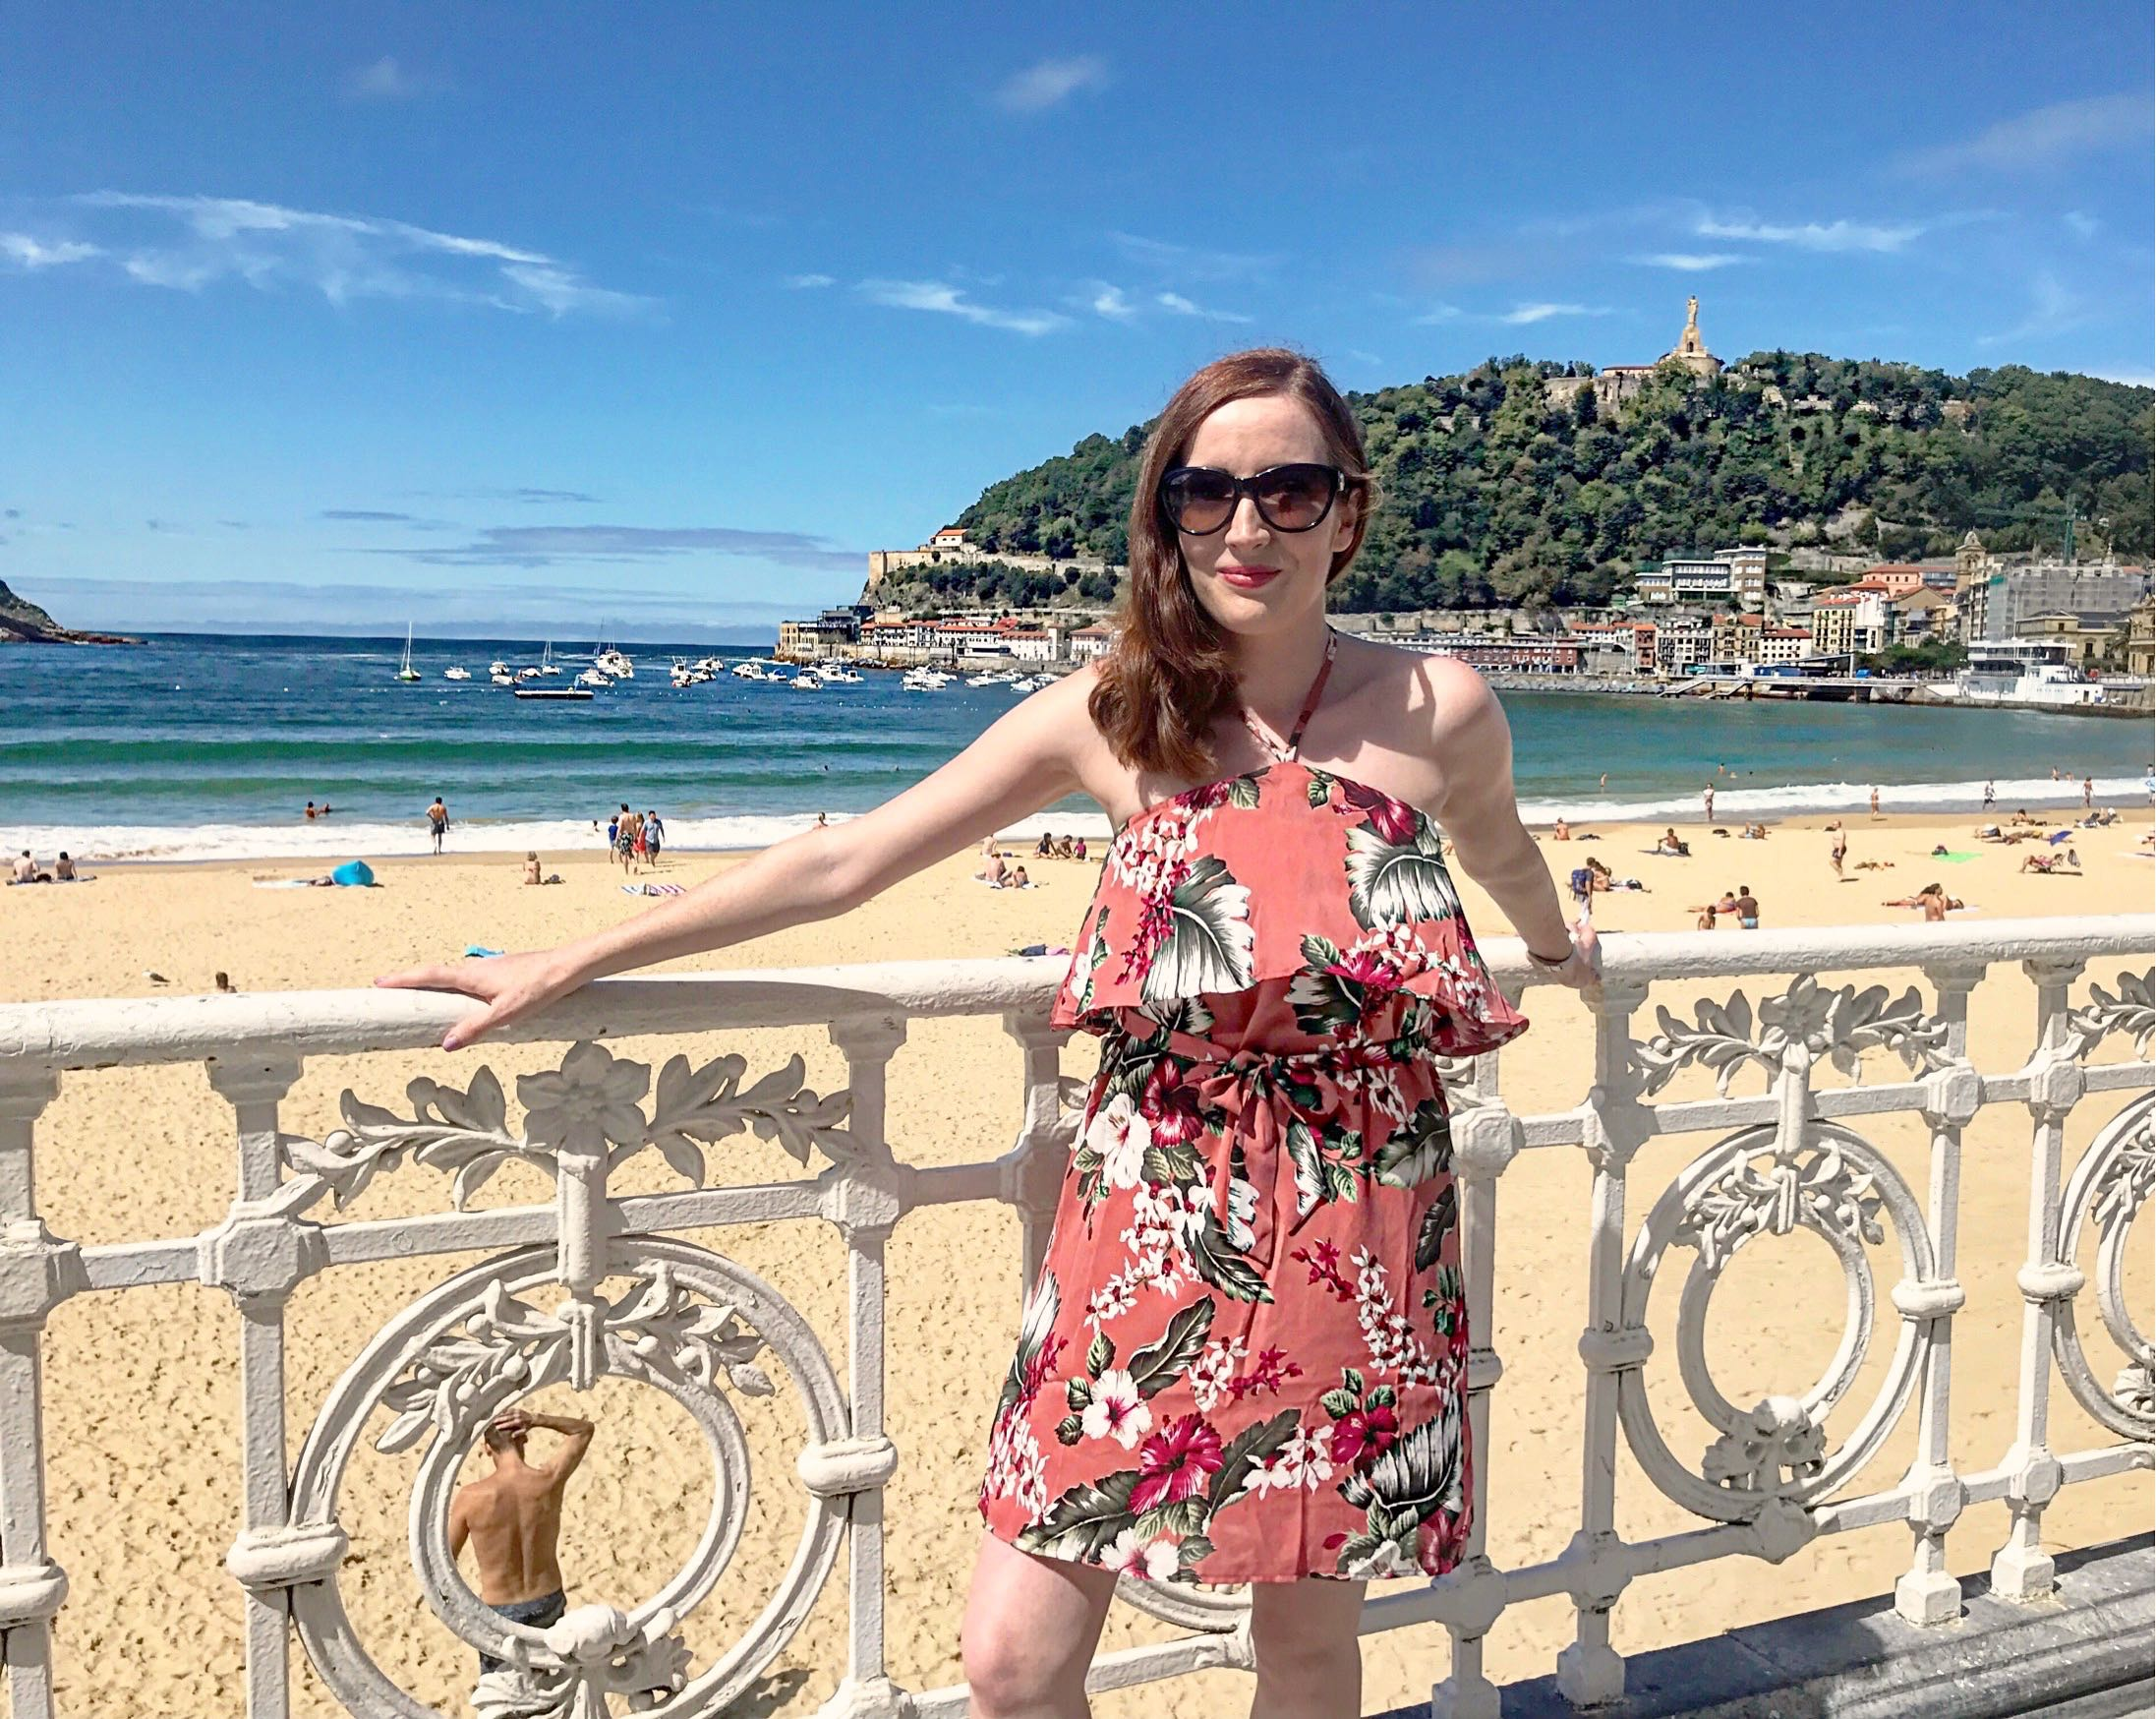 a73c3be5995d WHAT I WORE IN BIARRITZ FASHION ROUND-UP - BecBoop